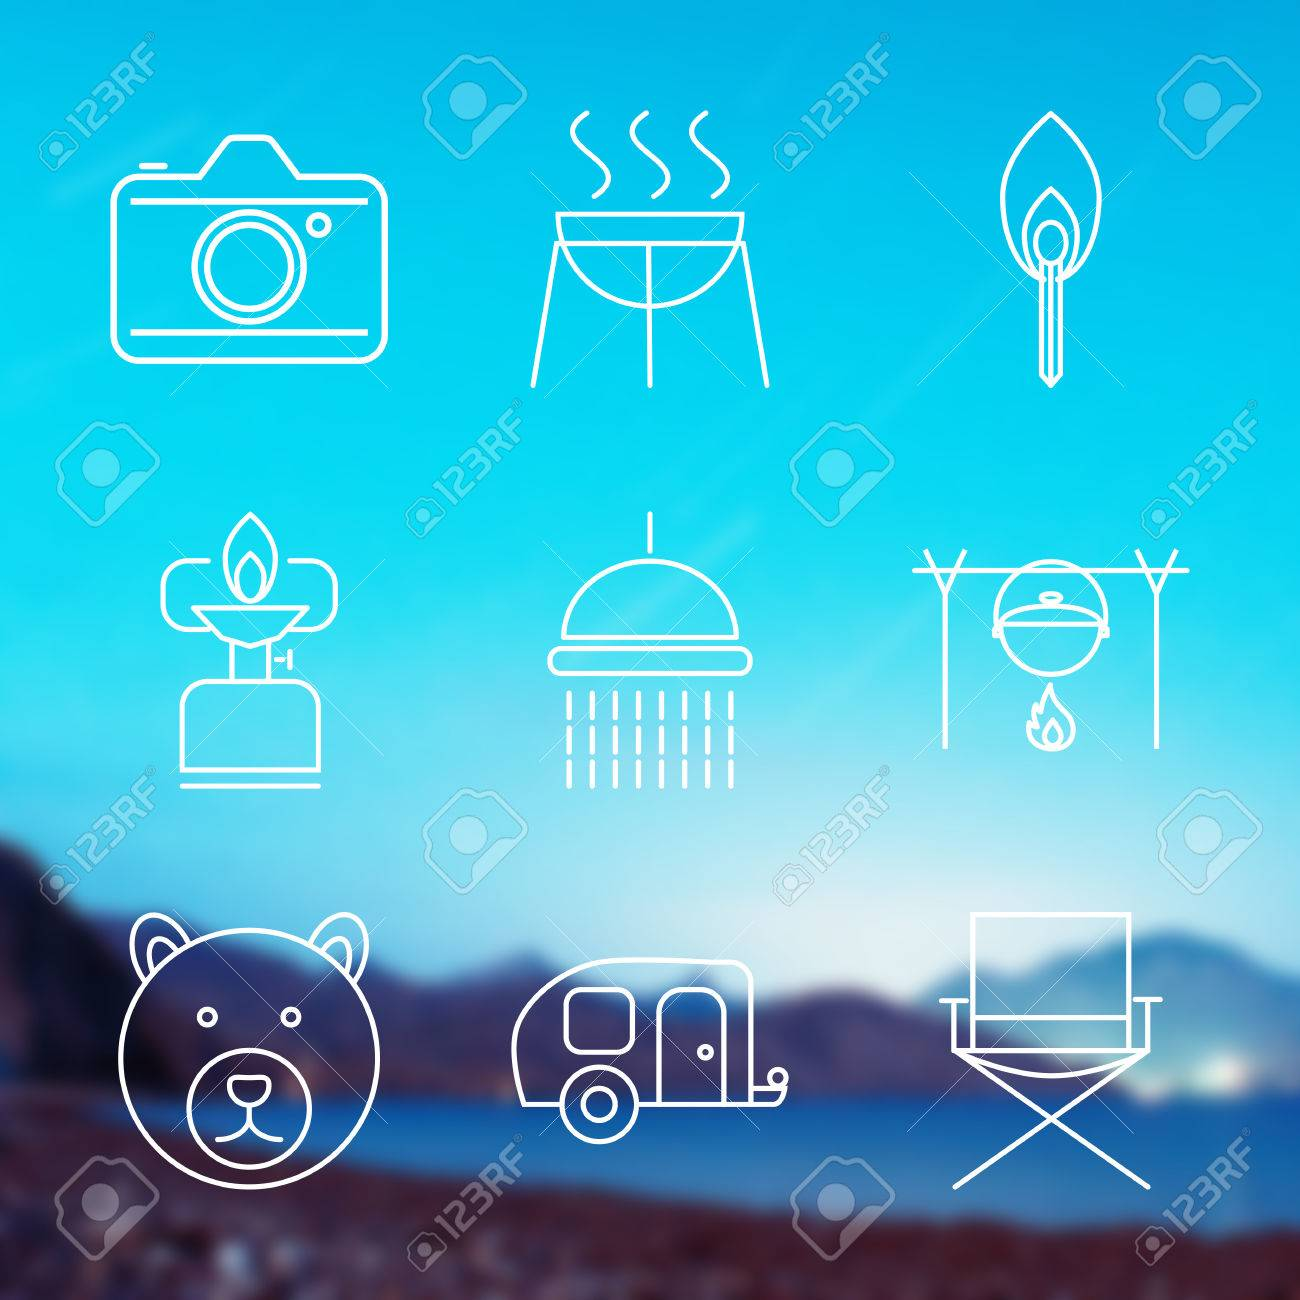 Set of Outline stroke Camping icons on blurred background. Vector illustration - 38322799